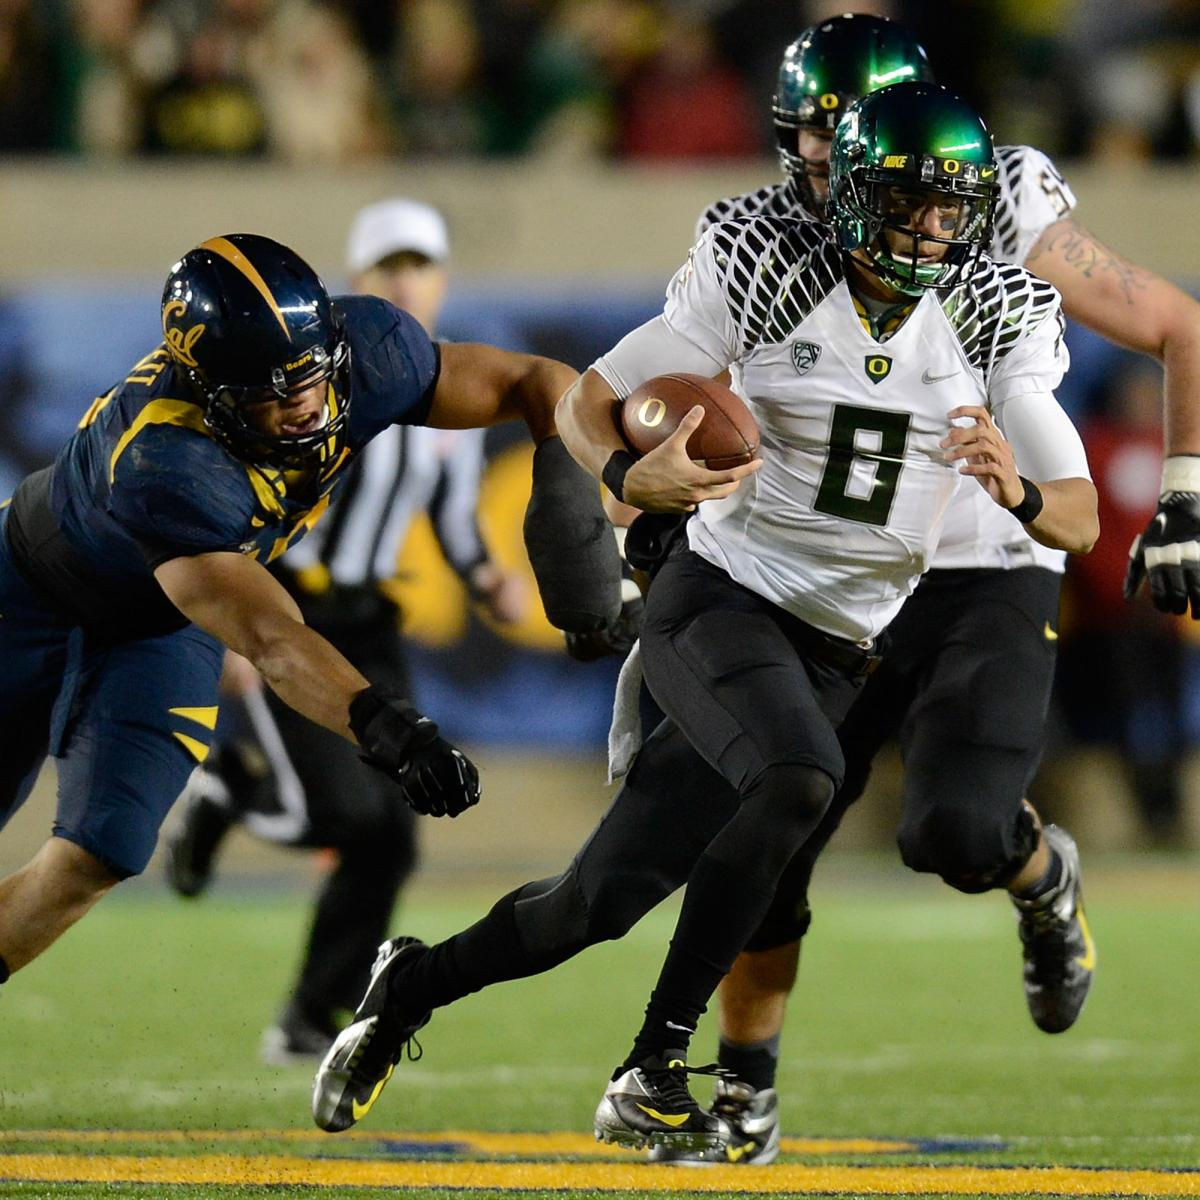 NCAA Football Rankings 2012: Hits And Misses From Week 12